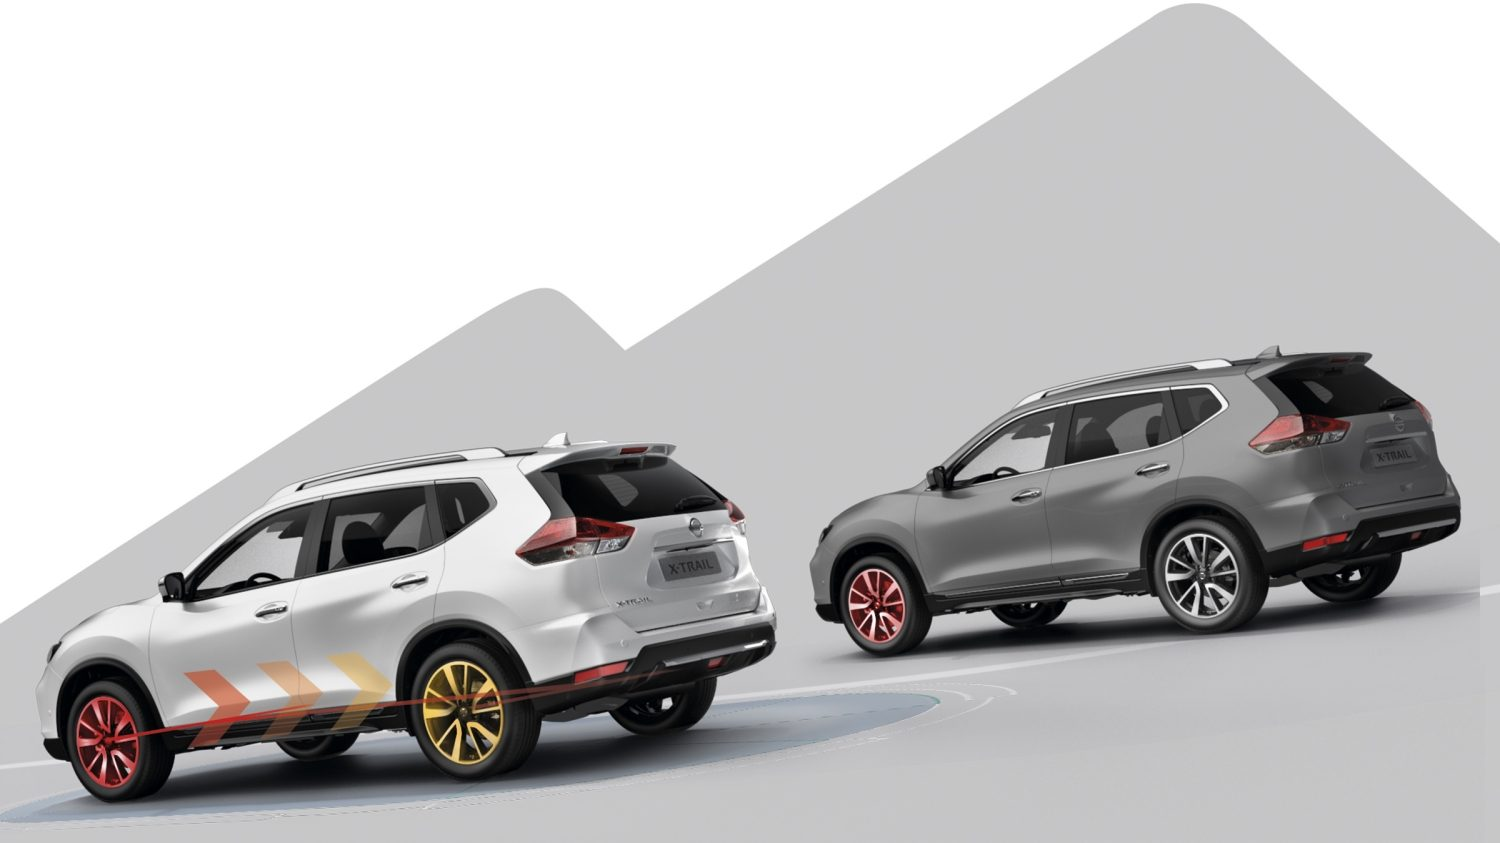 NISSAN X-TRAIL - Abbildung: Stillstands-Assistent